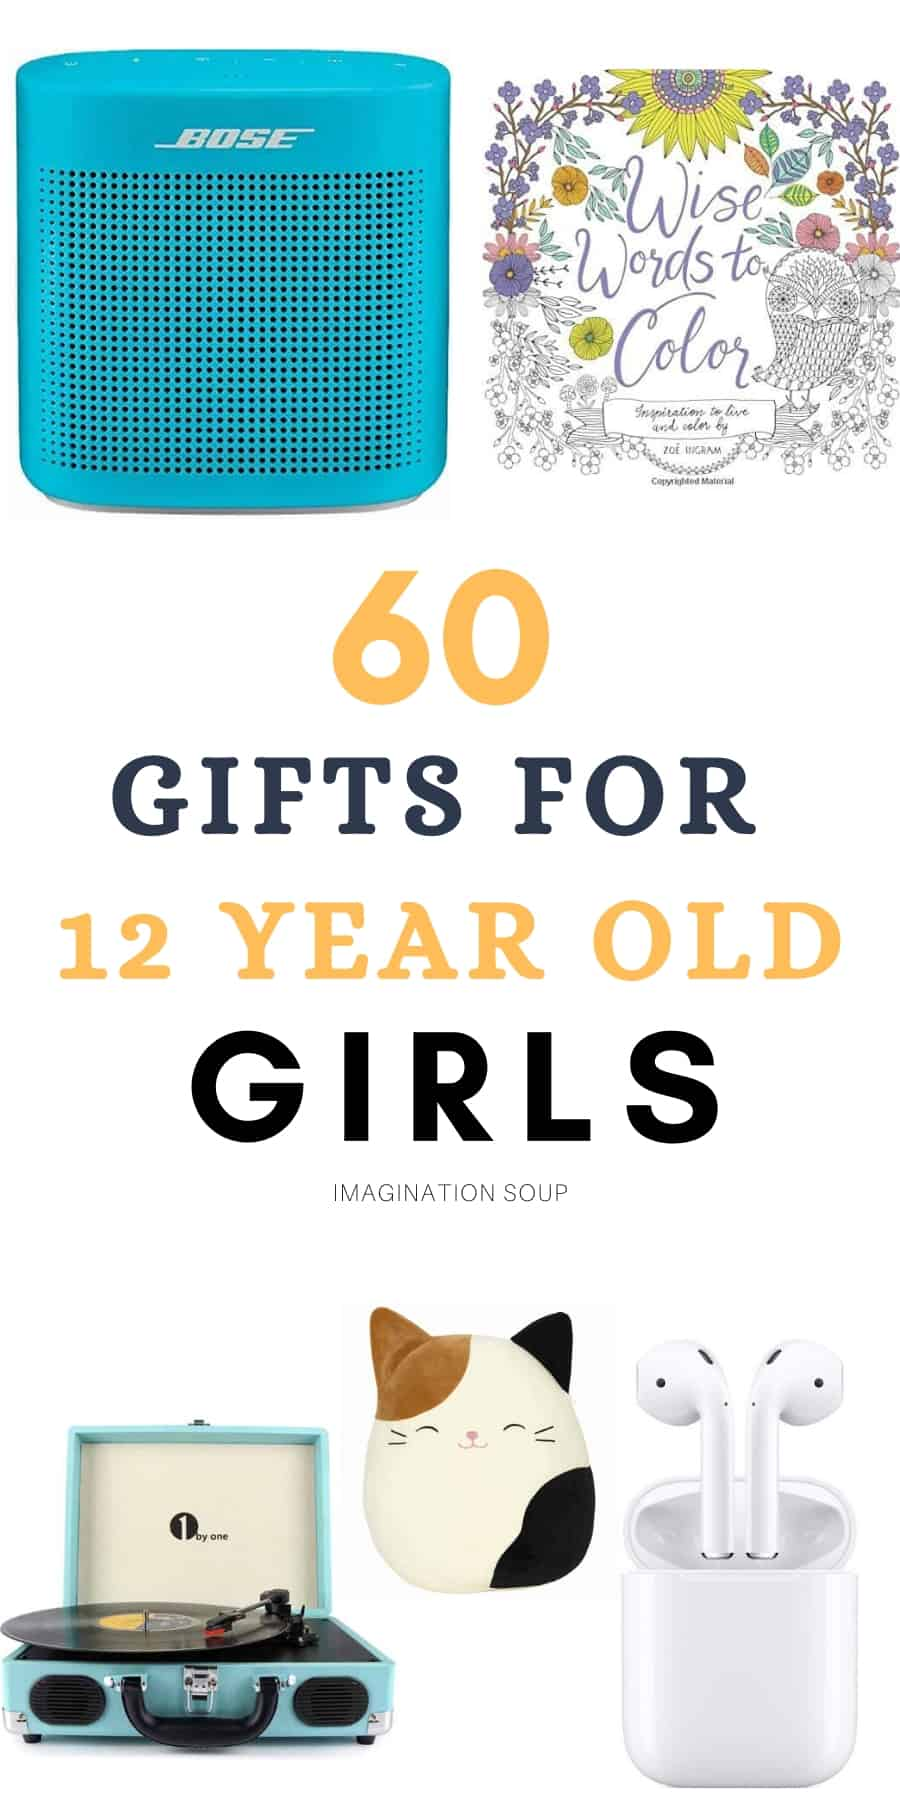 Gifts for 12 Year Old Girls   Imagination Soup   Tween girl gifts ...